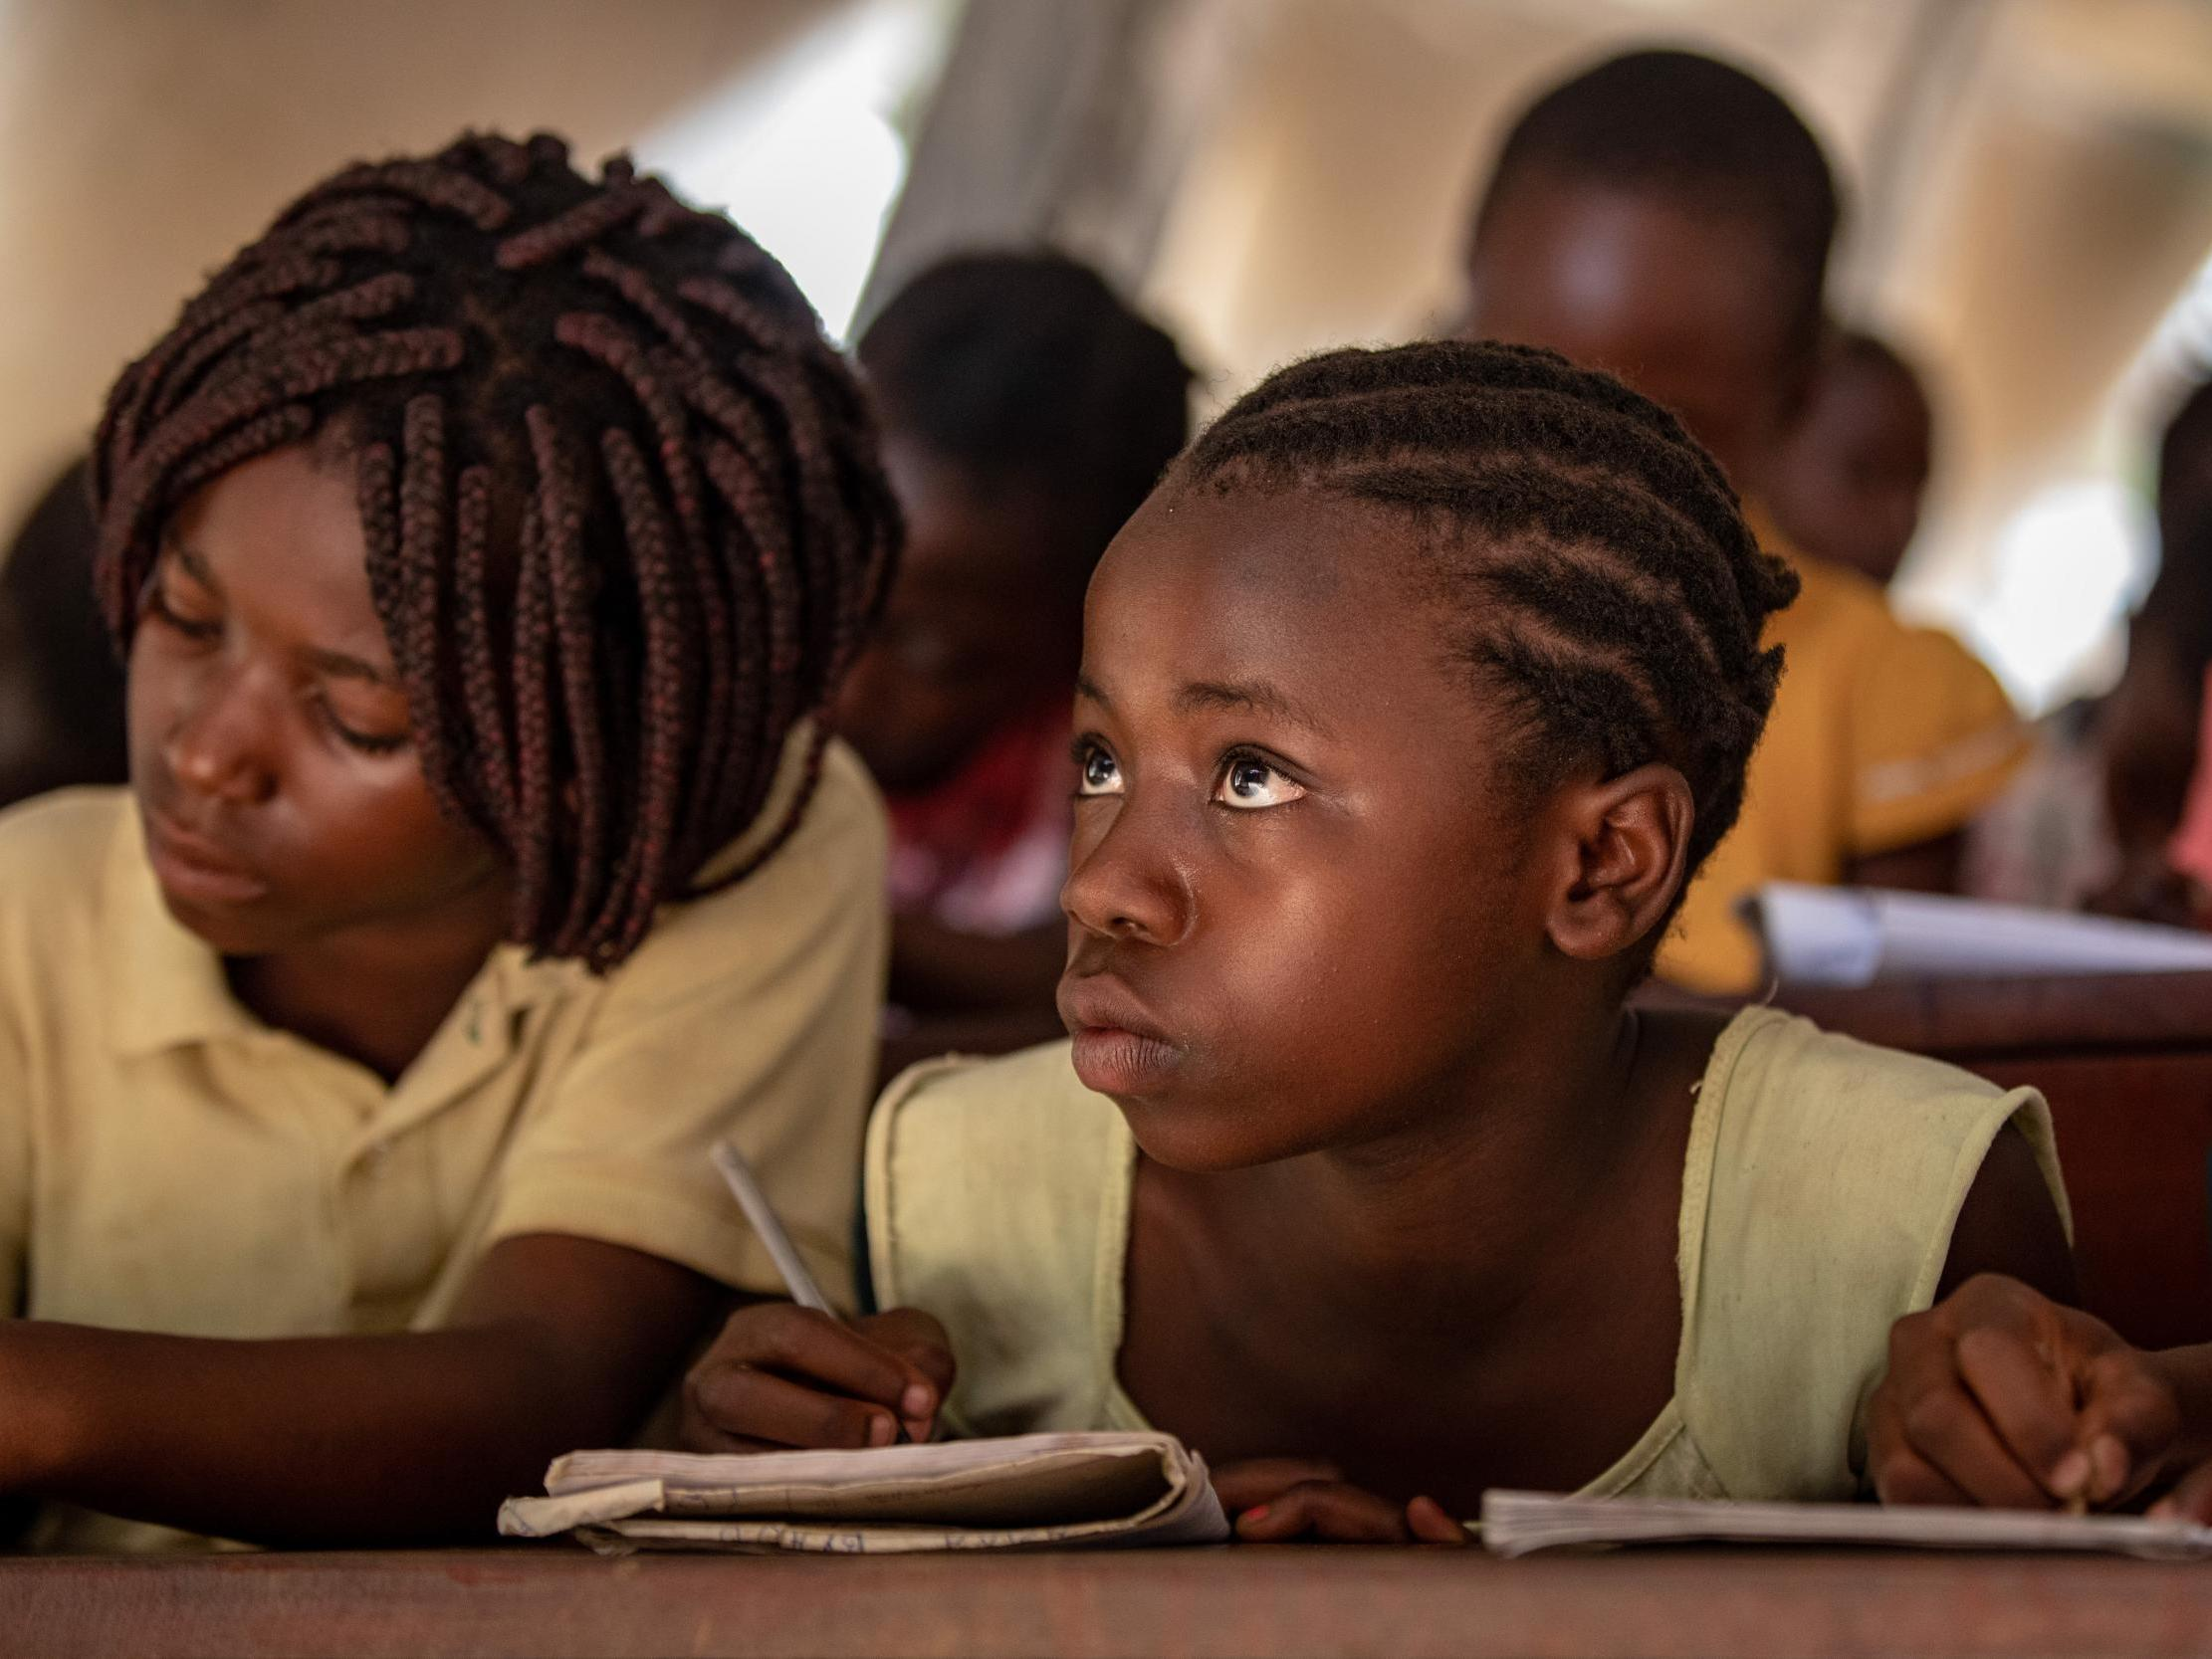 One in three poorest girls across the world has never been to school